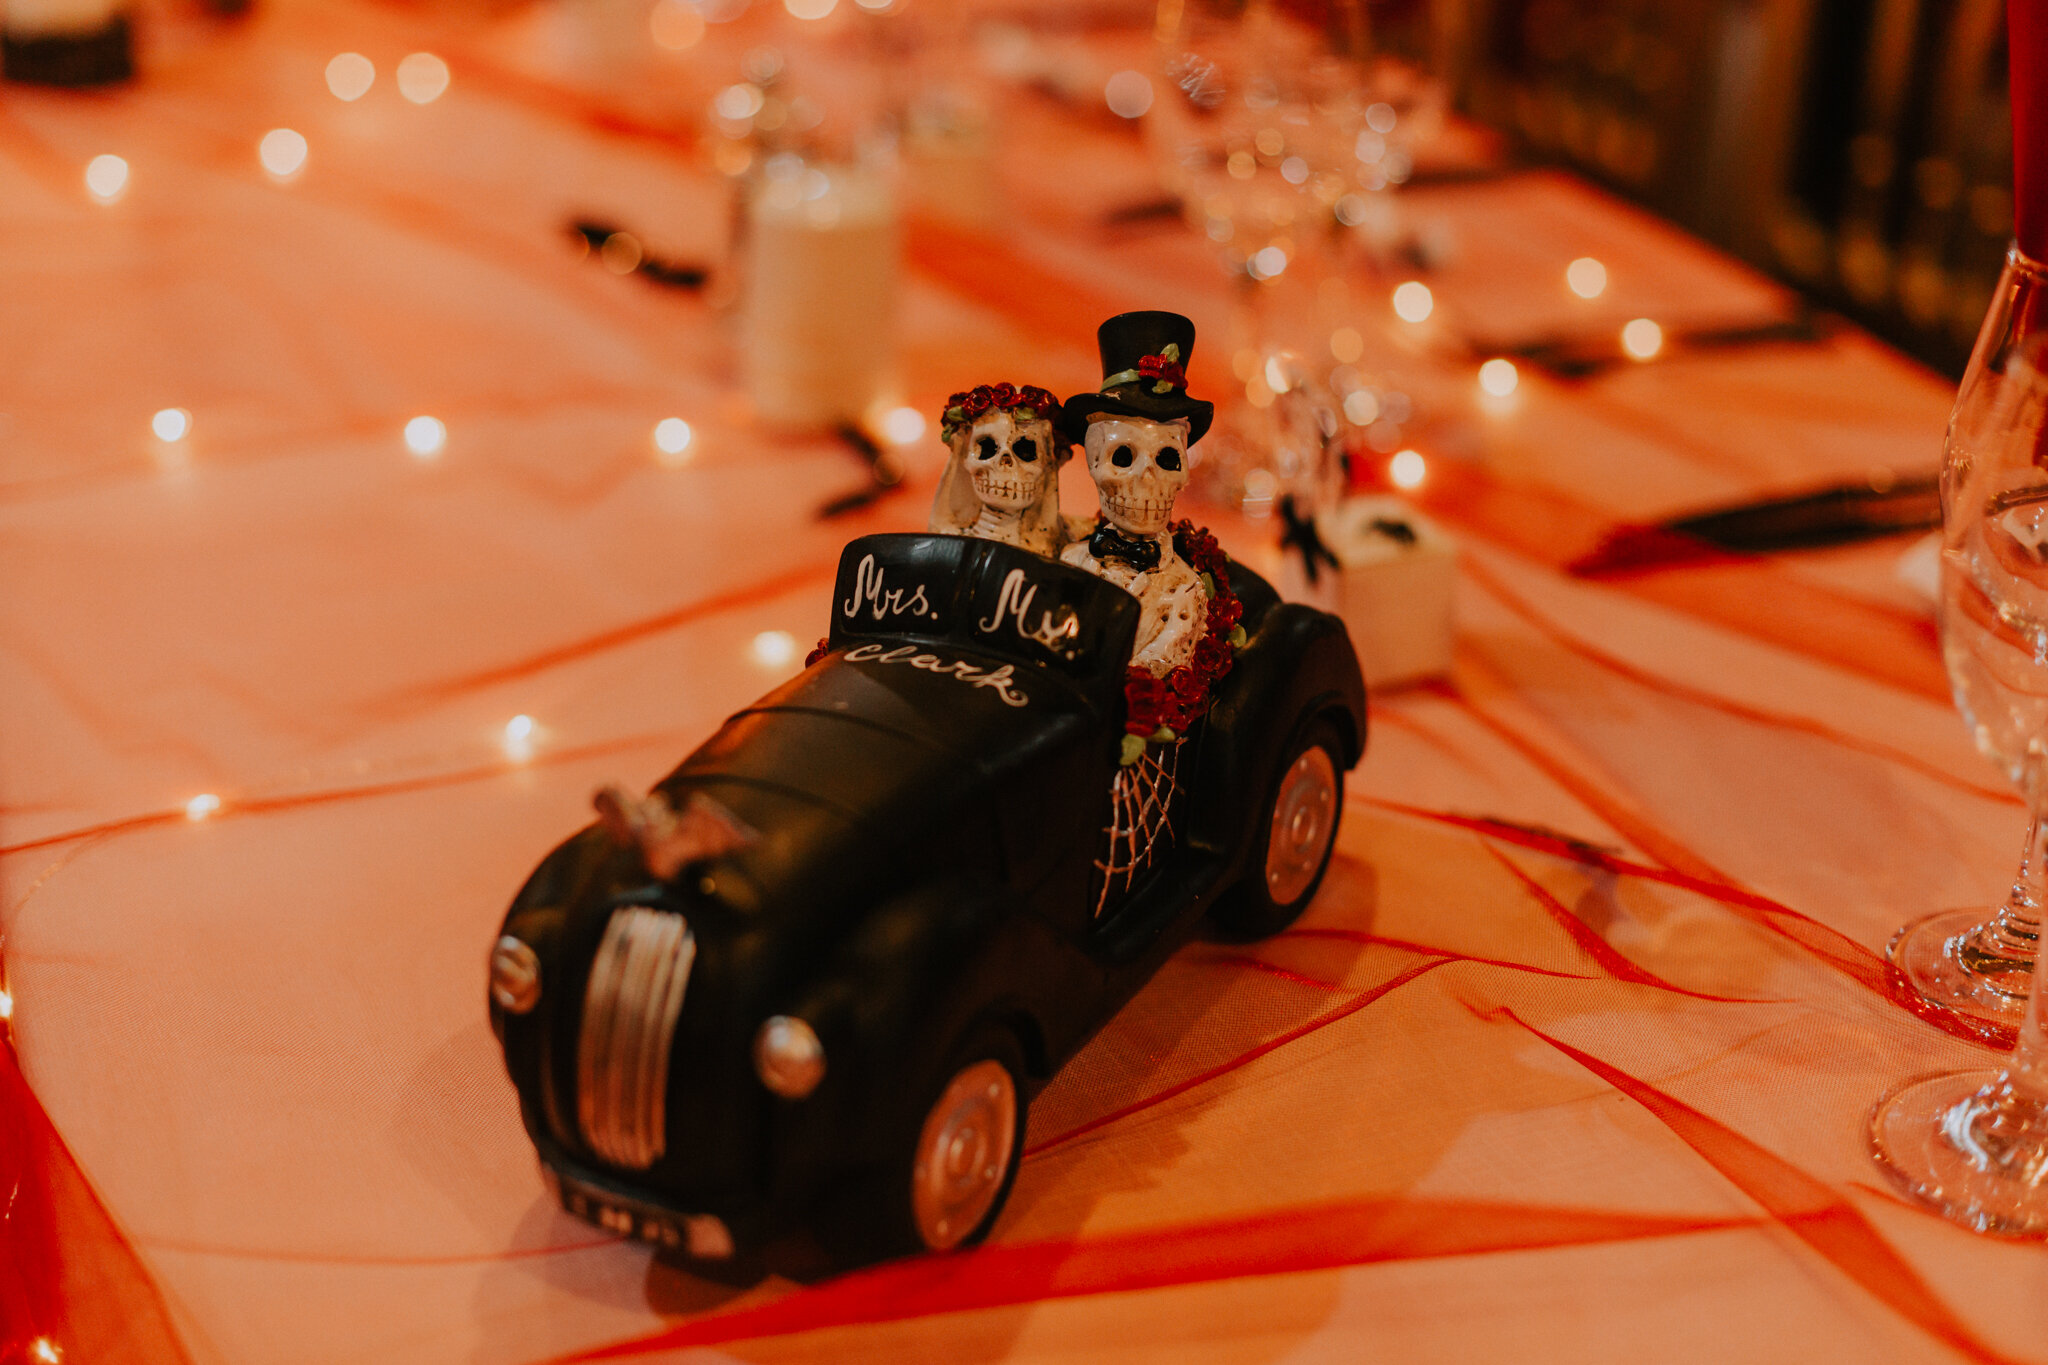 The toy car with skeletons table decor